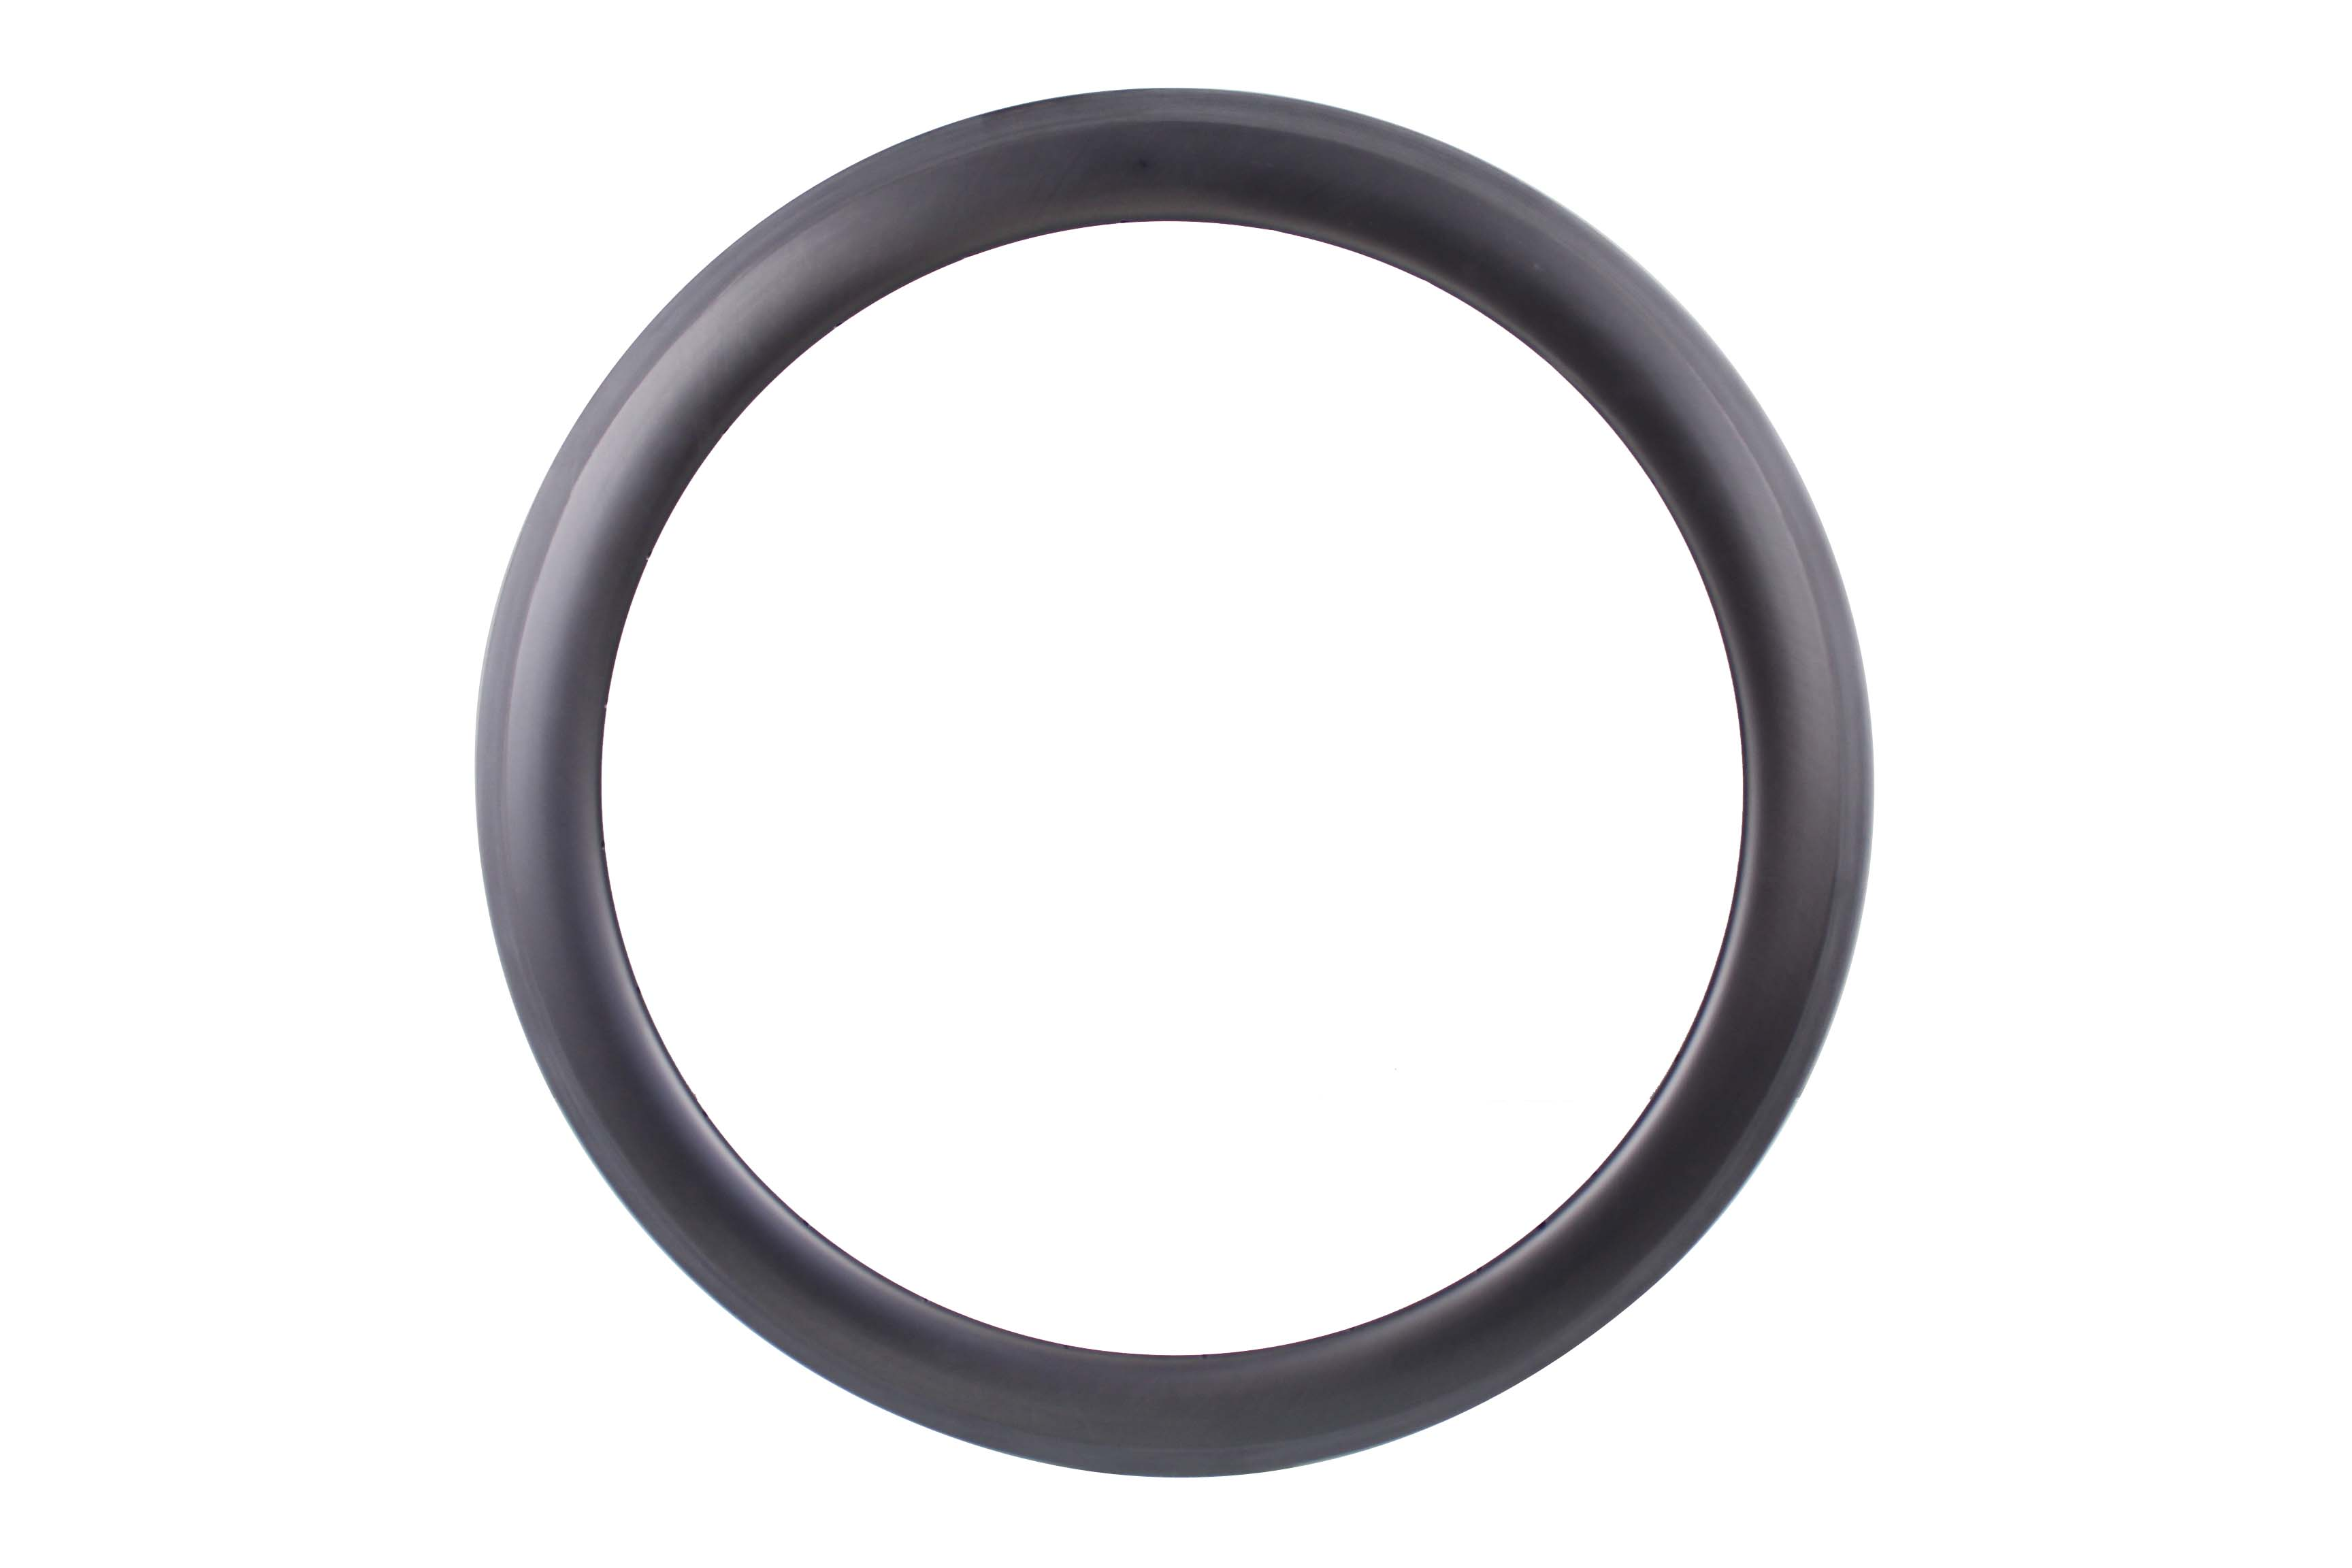 Toray fiber 700C carbon bike rims 56mm tubular front and rear aero spokes 20h/24h carbon 56mm rims